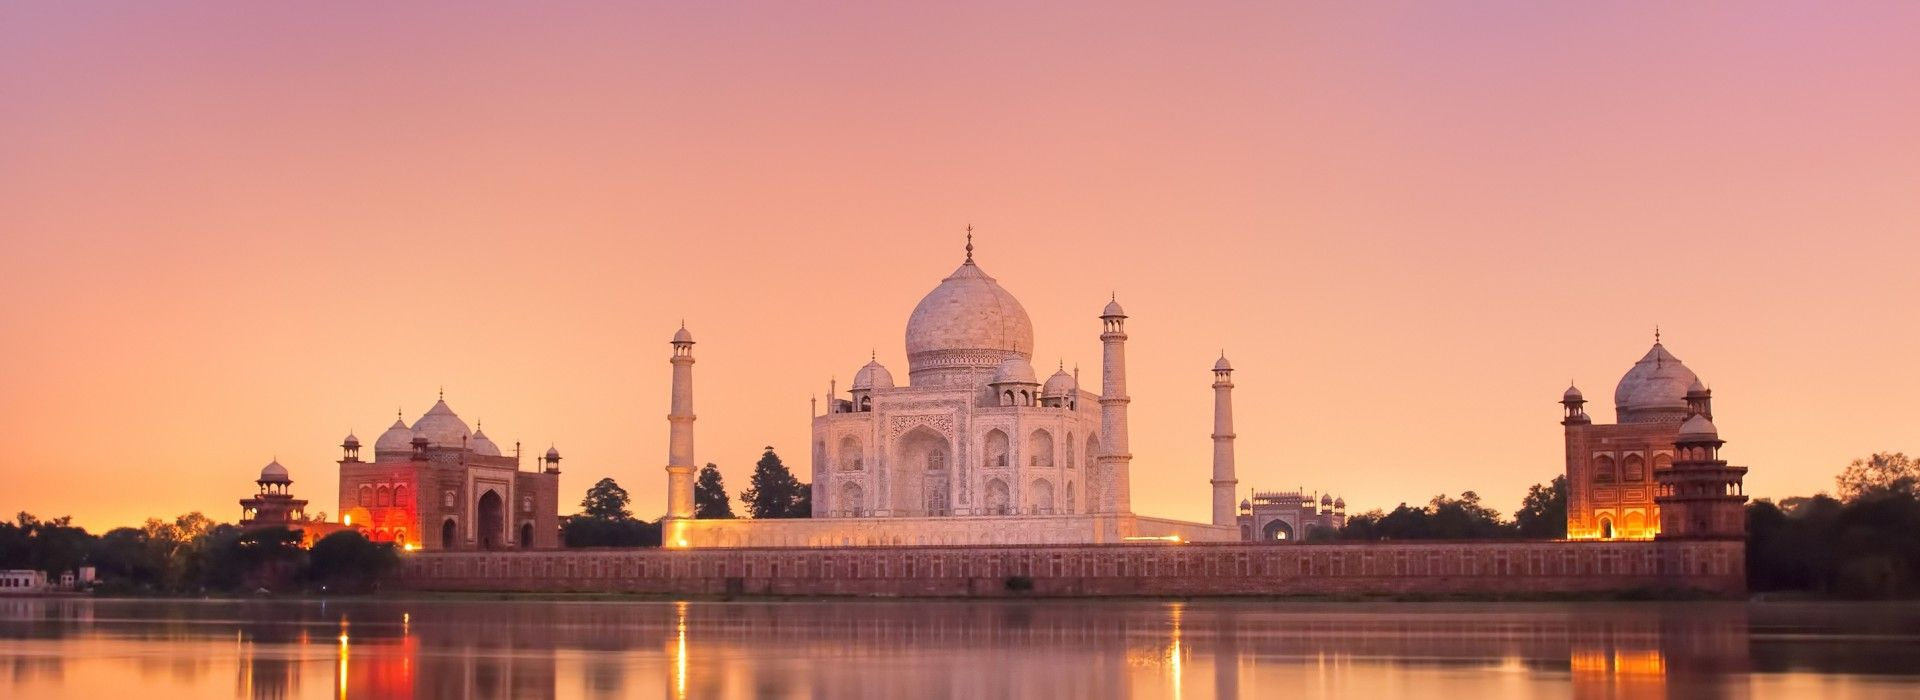 Sightseeing, attractions, culture and history Tours in Delhi & Golden Triangle